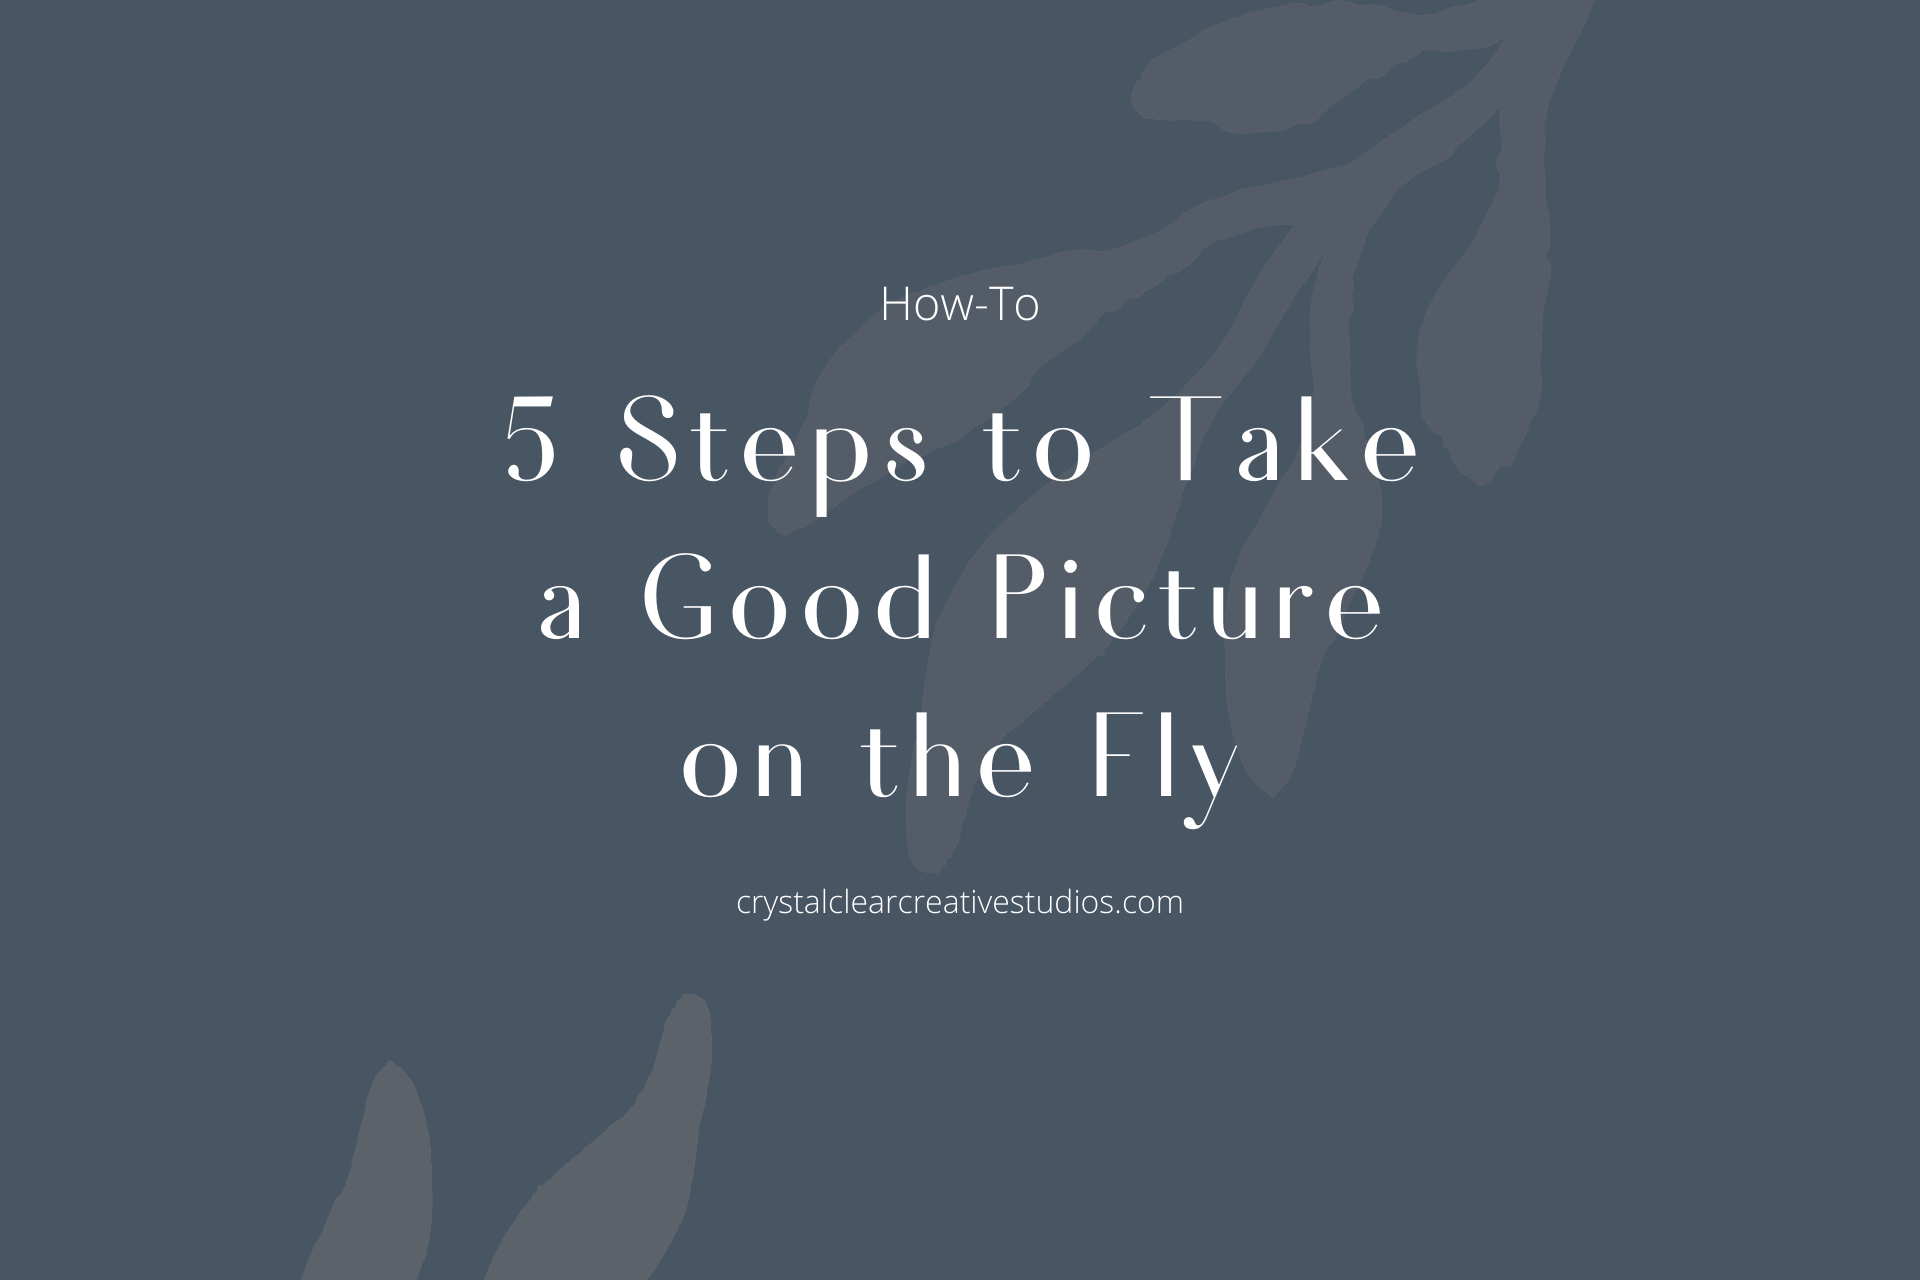 5 Steps to Take a Good Picture on the Fly